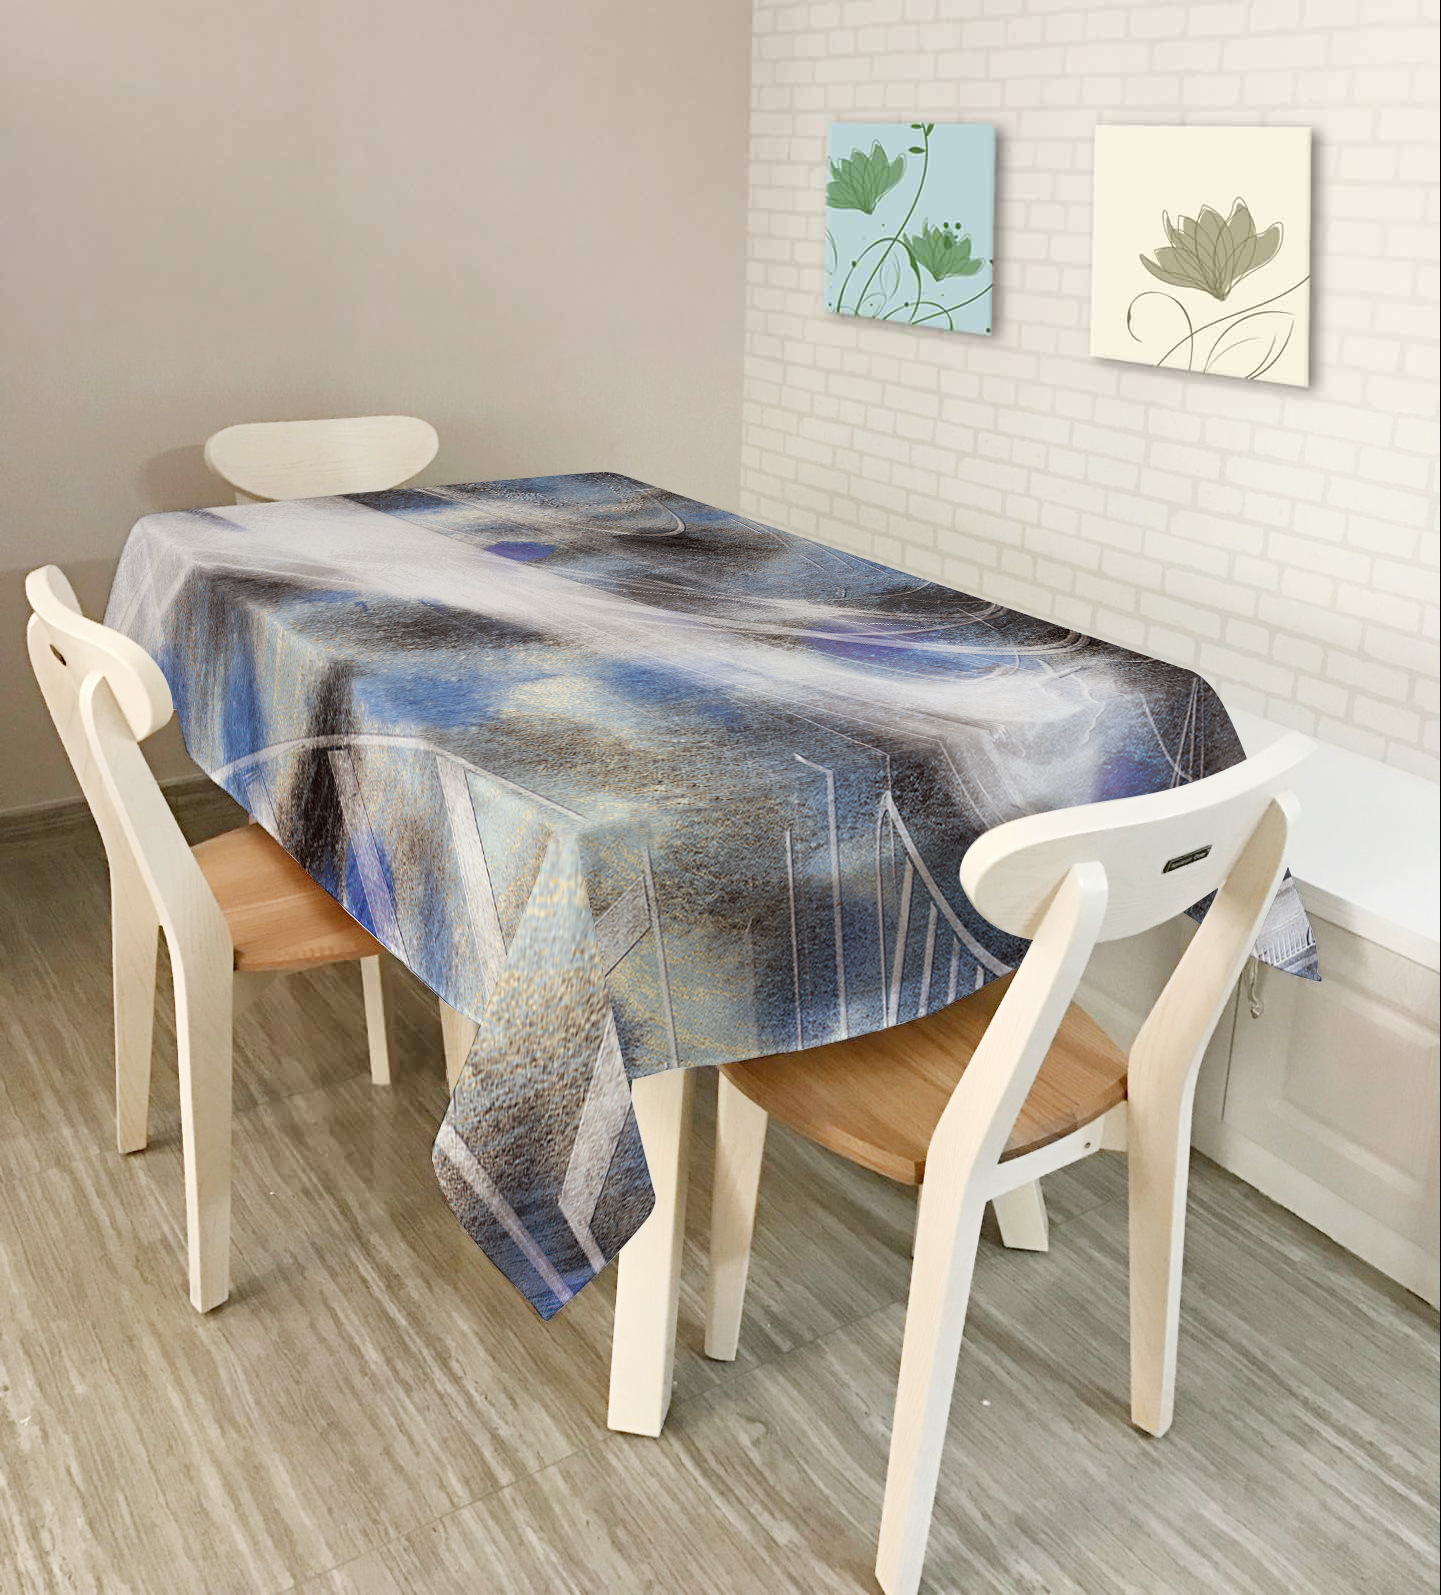 KCASA KC-TC1 American Style Creative Landscape Tablecloth Waterproof Oil Proof Tea Tablecloth Home Party Decorative